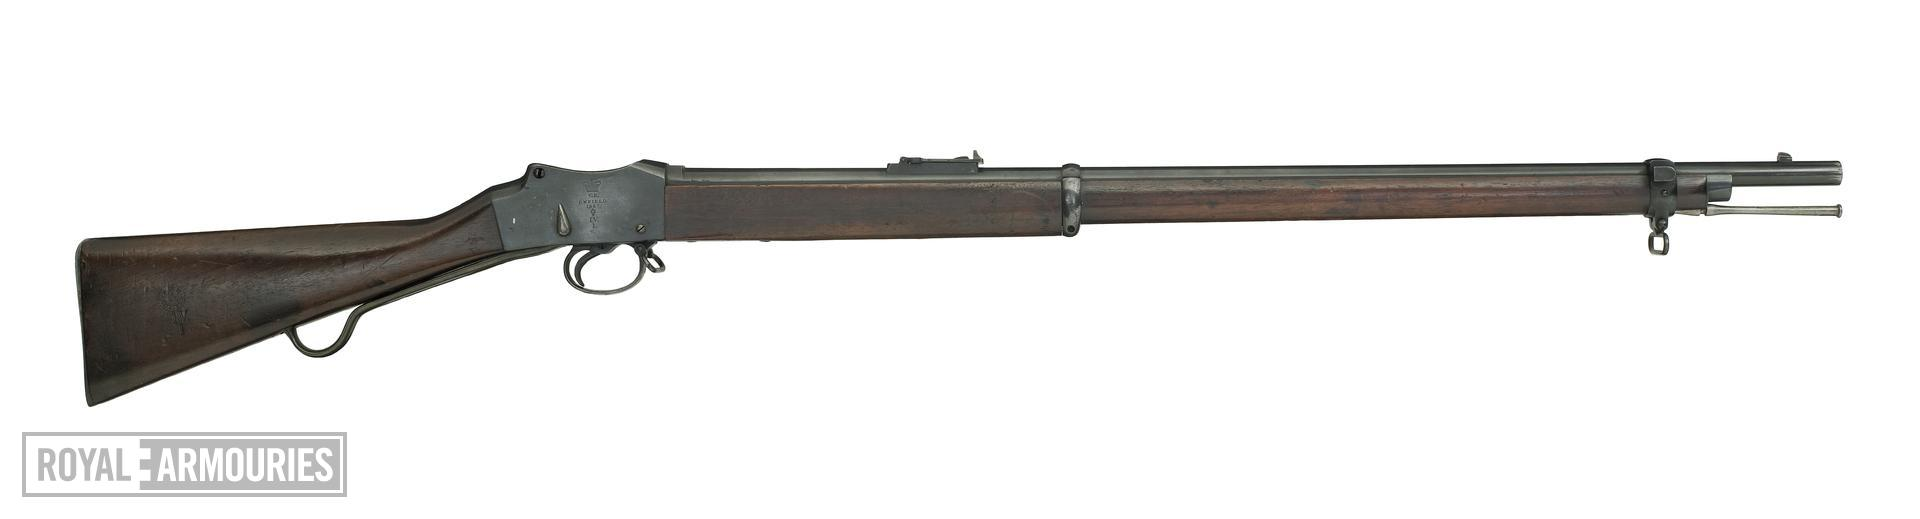 Centrefire breech-loading rifle - Martini-Henry Mk.IV A